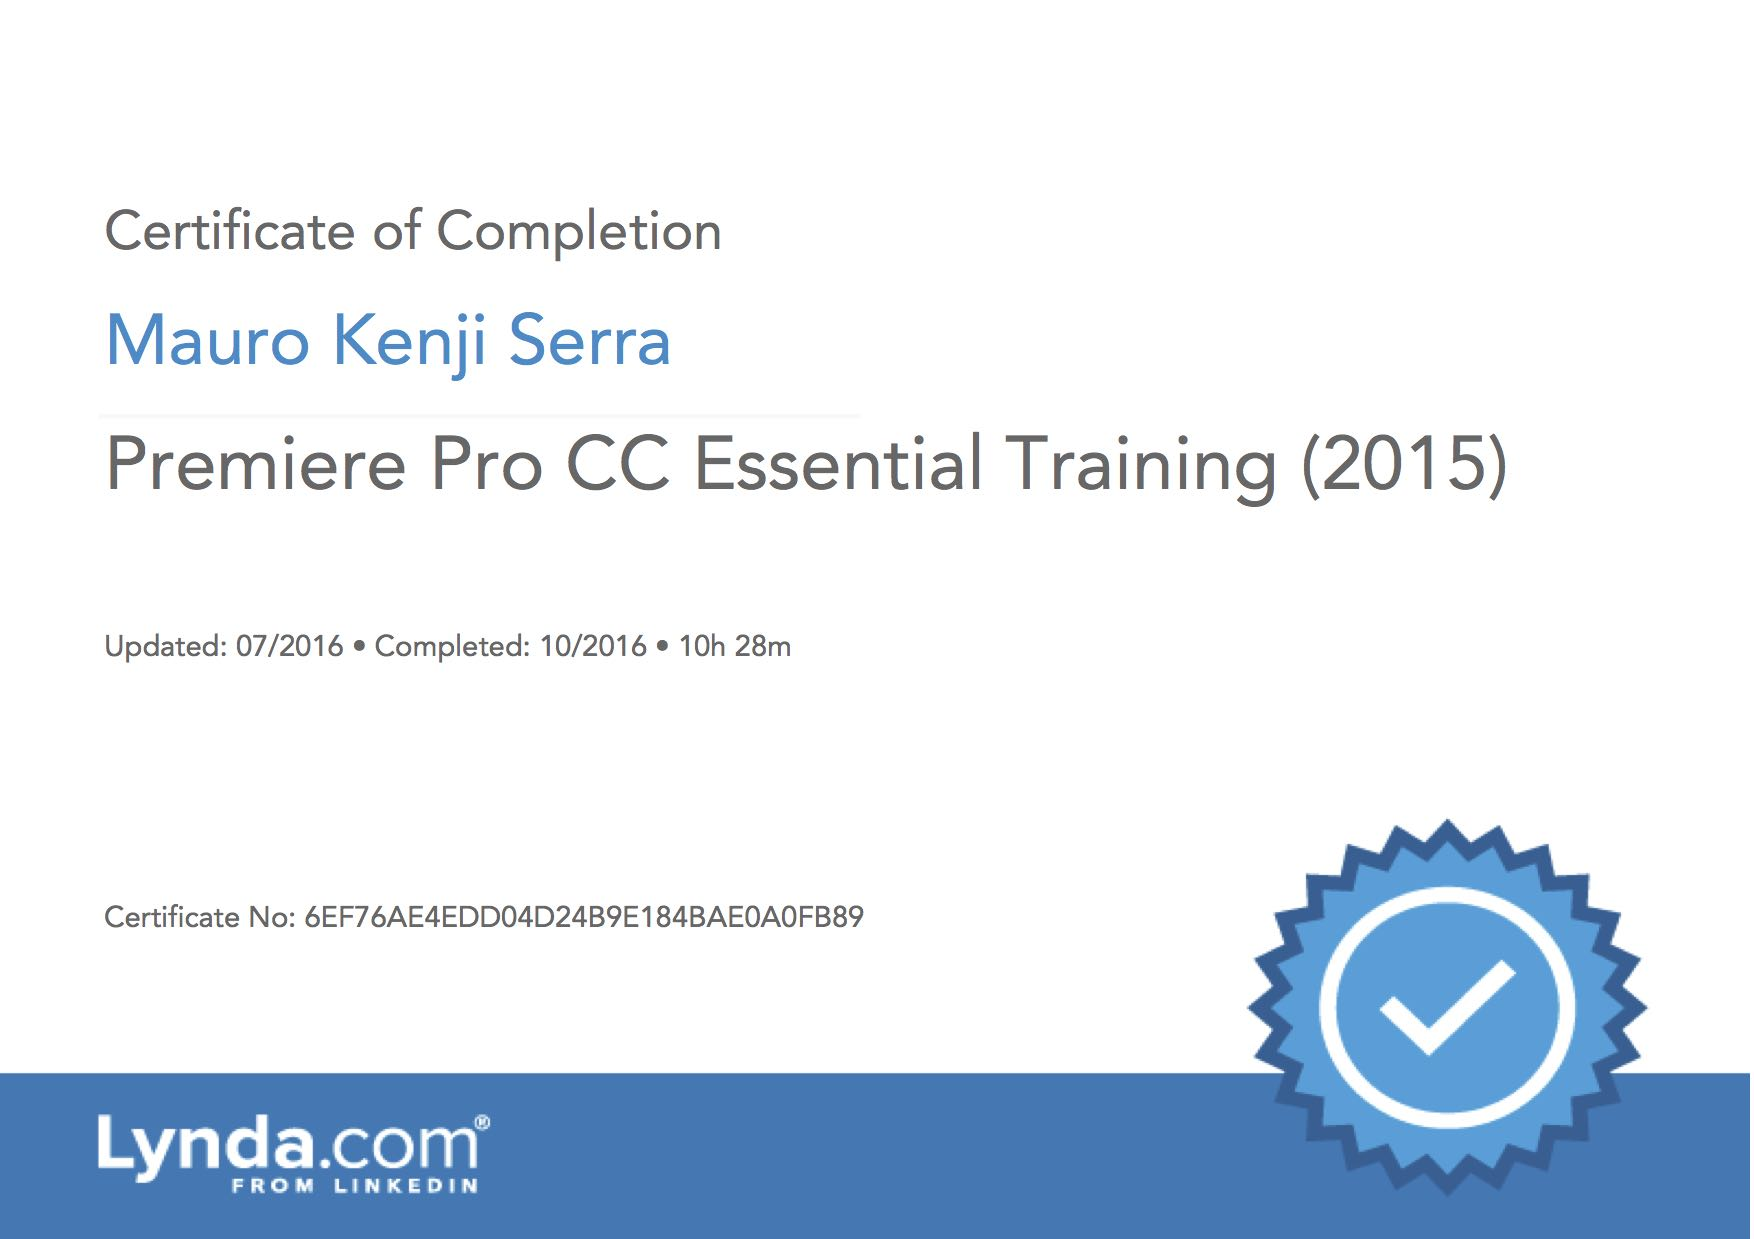 Premiere Pro CC Essential Training